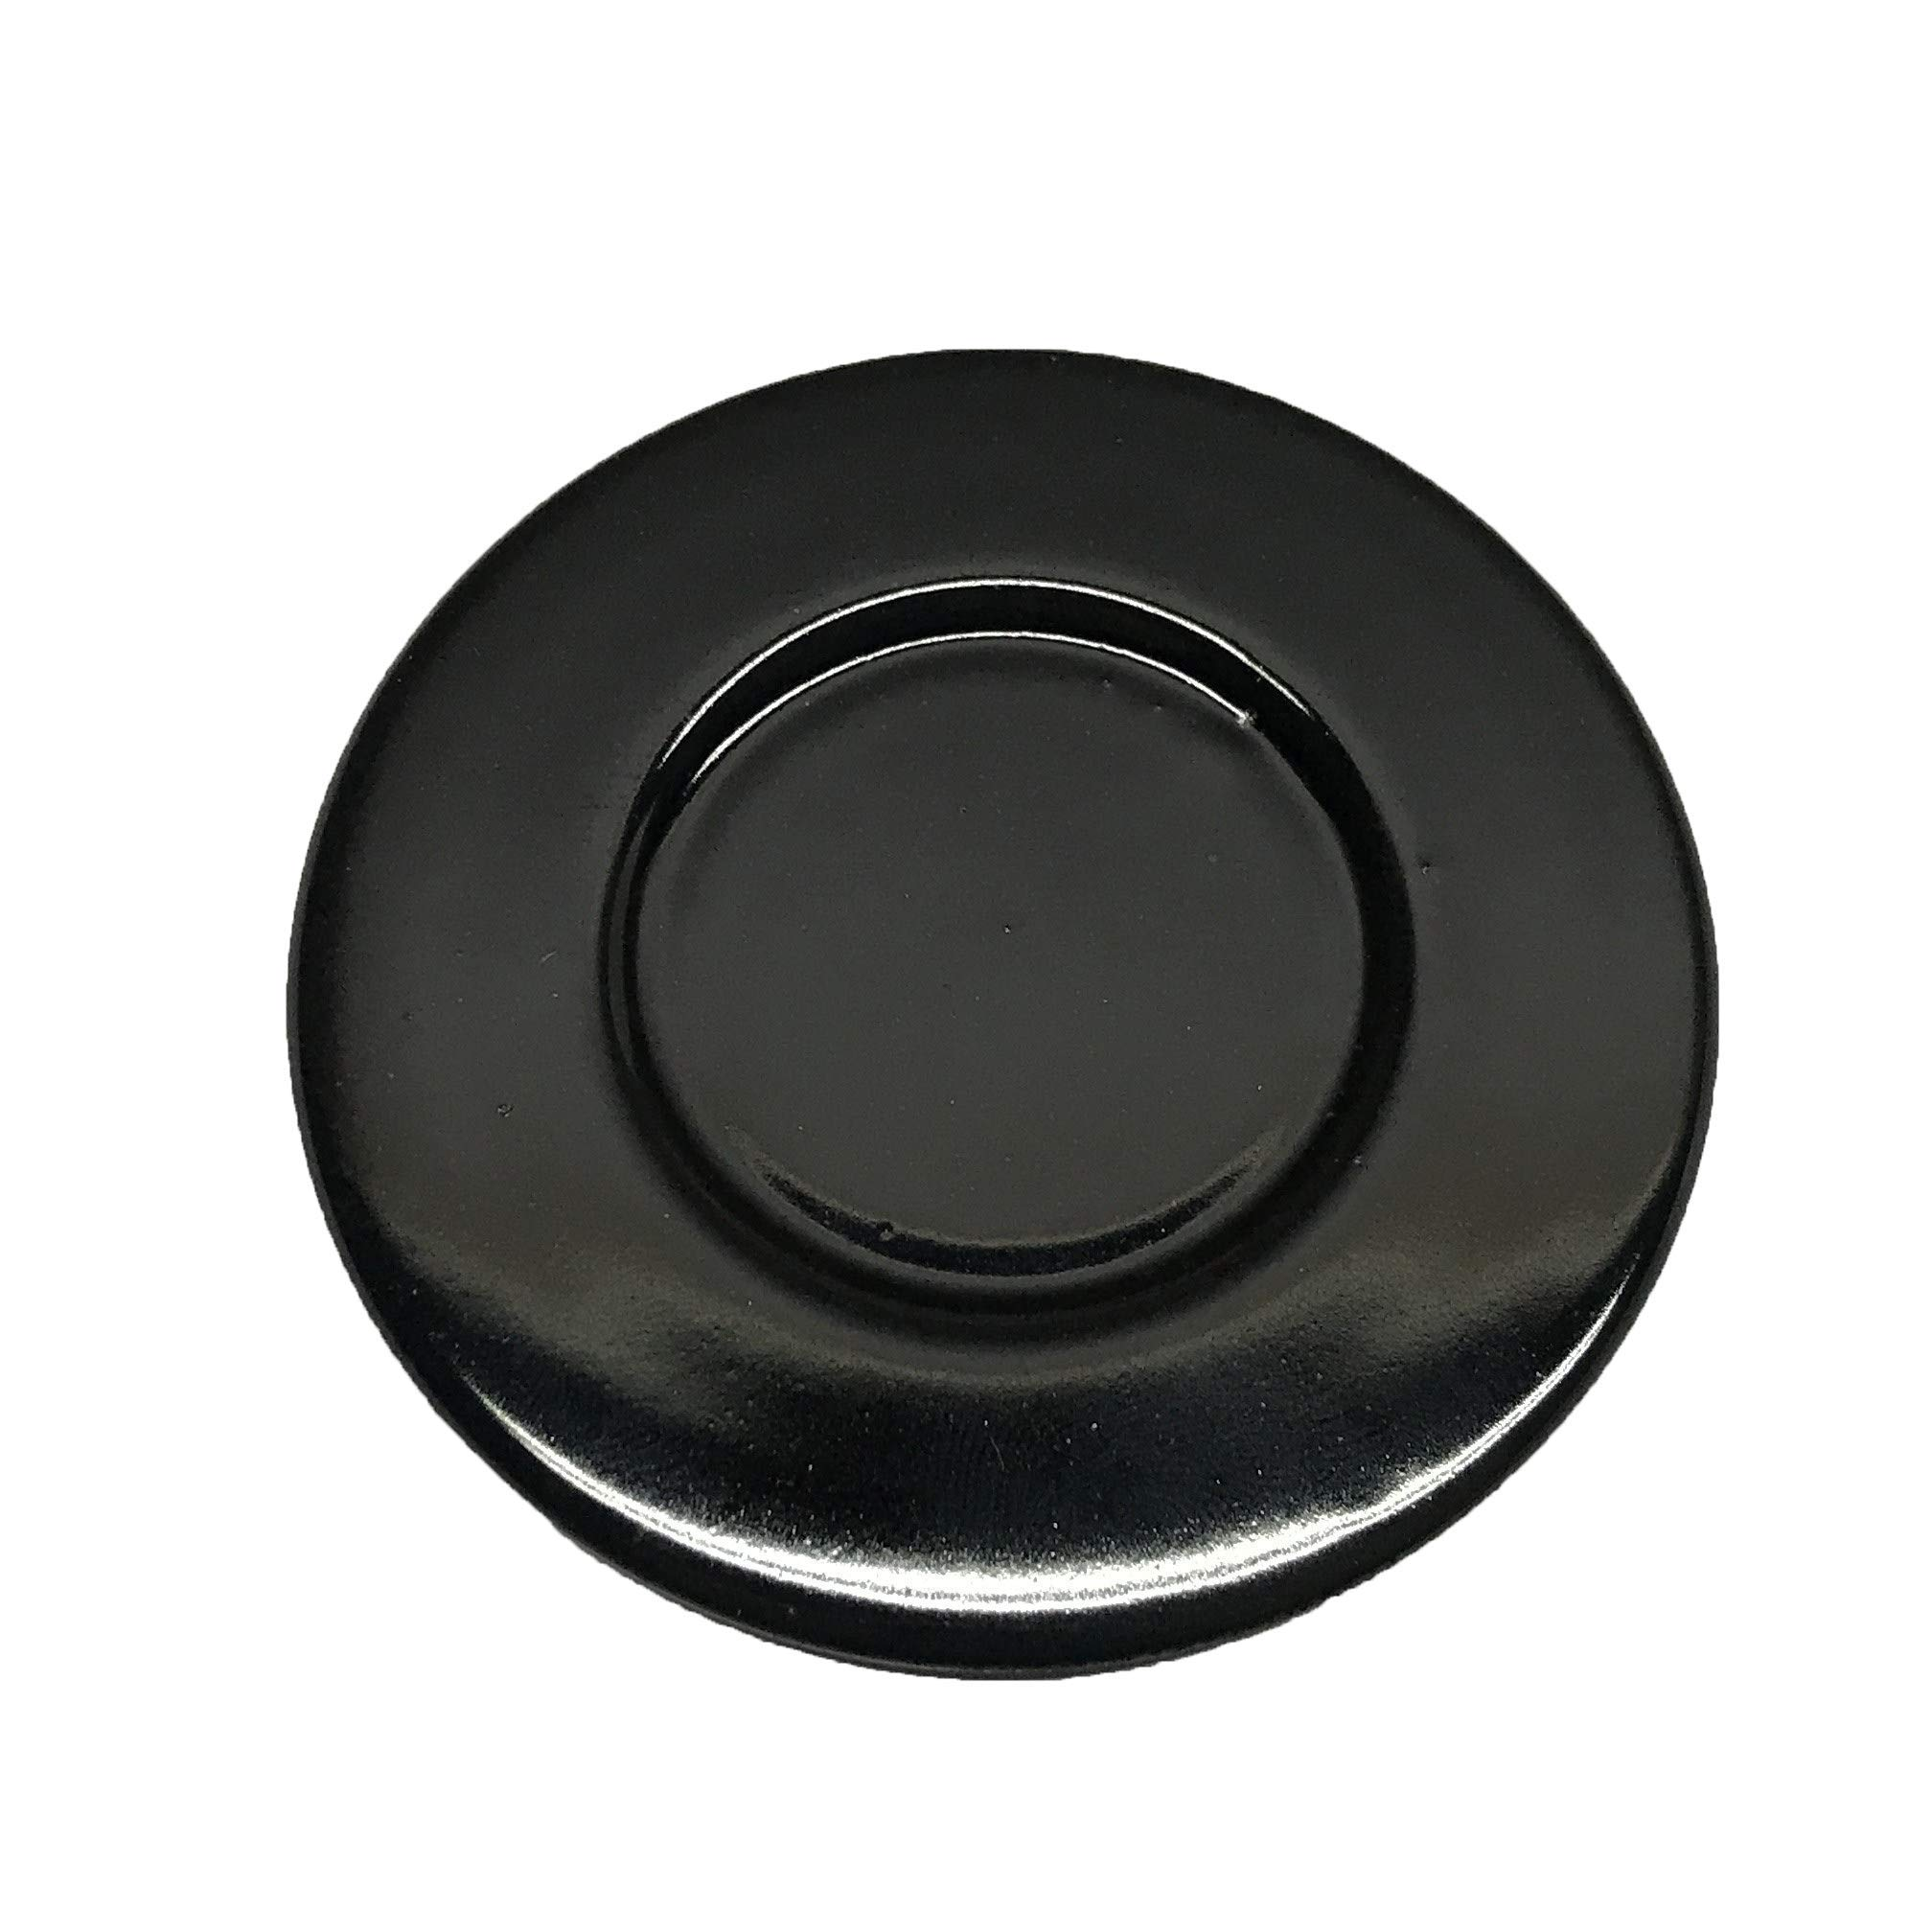 GRP SURFACE BURNER CAP REPLACEMENT FOR WHIRLPOOL 98017461 - SET OF 02